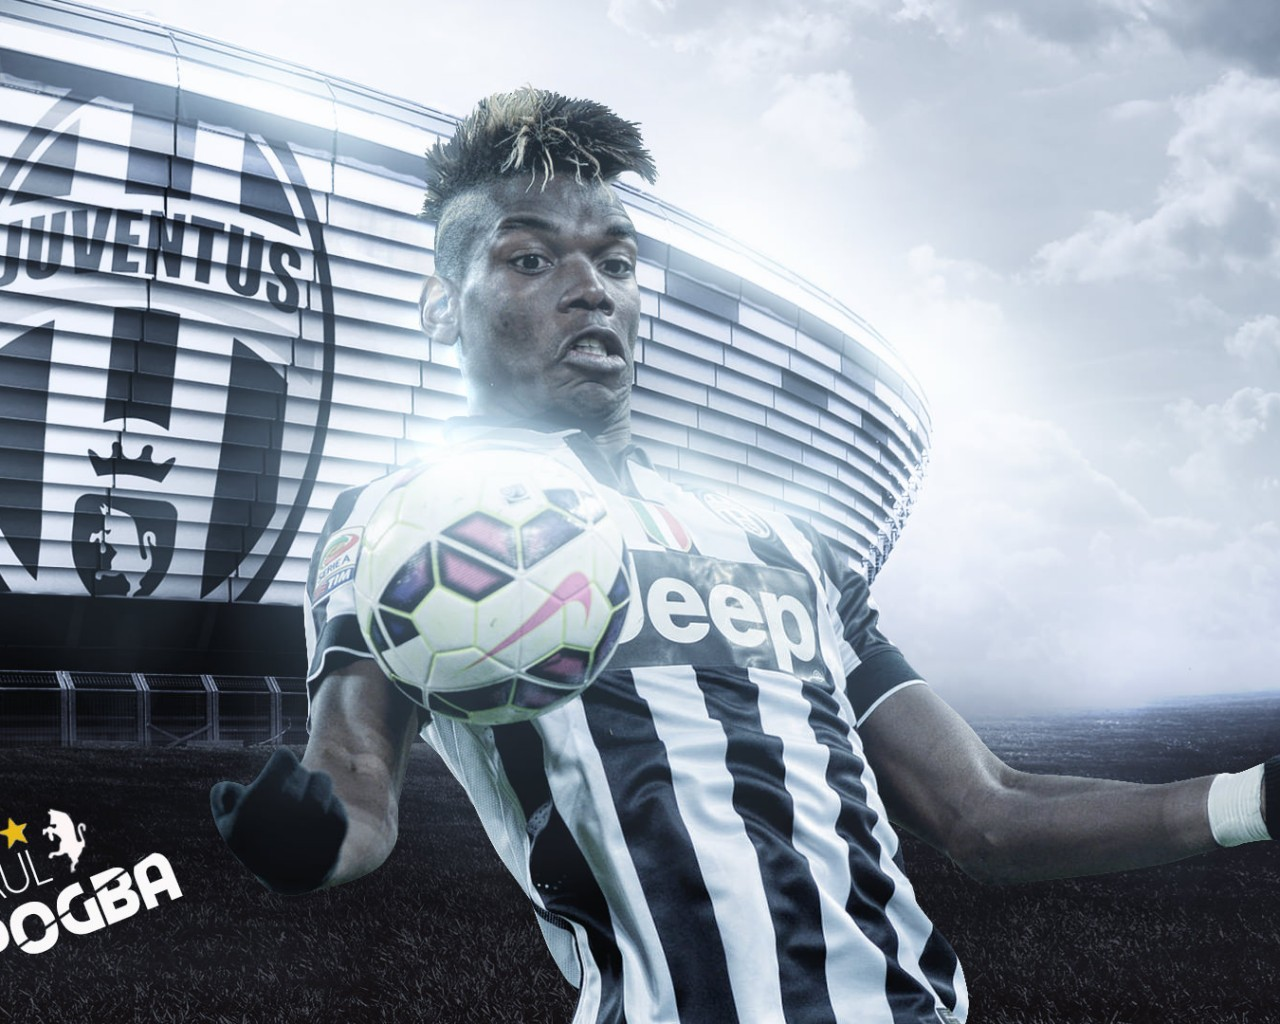 Paul Pogba Juventus 20152016 Wallpaper   Football Wallpapers HD 1280x1024